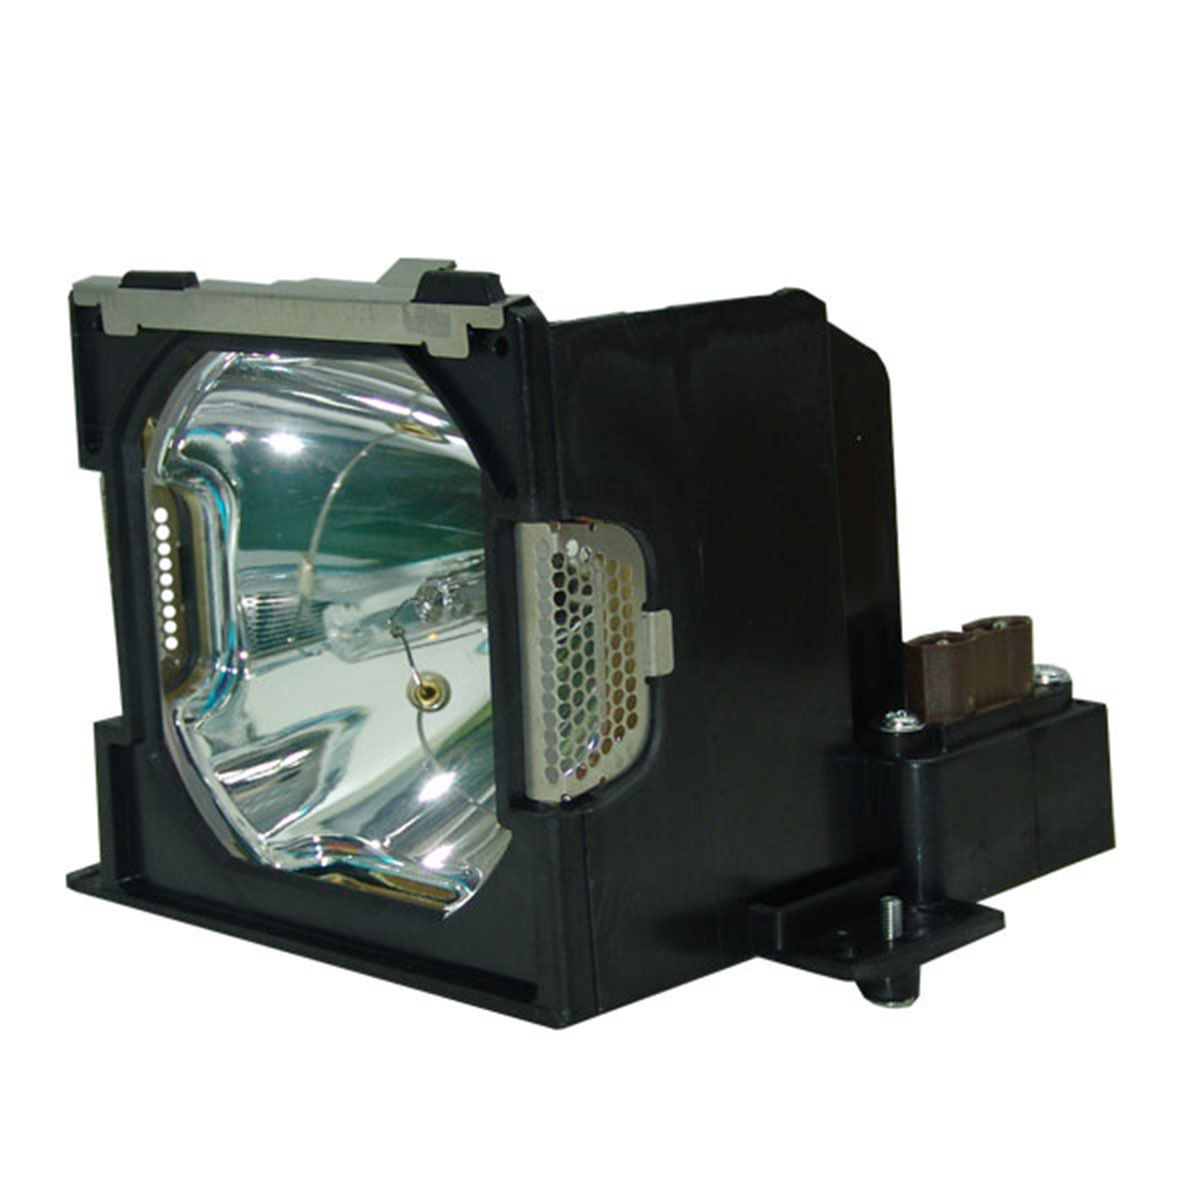 Projector Lamp Bulb POA-LMP81 POALMP81 LMP81 610-314-9127 for SANYO PLC-XP51 PLC-XP56 PLC-XP51L PLC-XP5100C with housing lamp housing for sanyo 610 3252957 6103252957 projector dlp lcd bulb